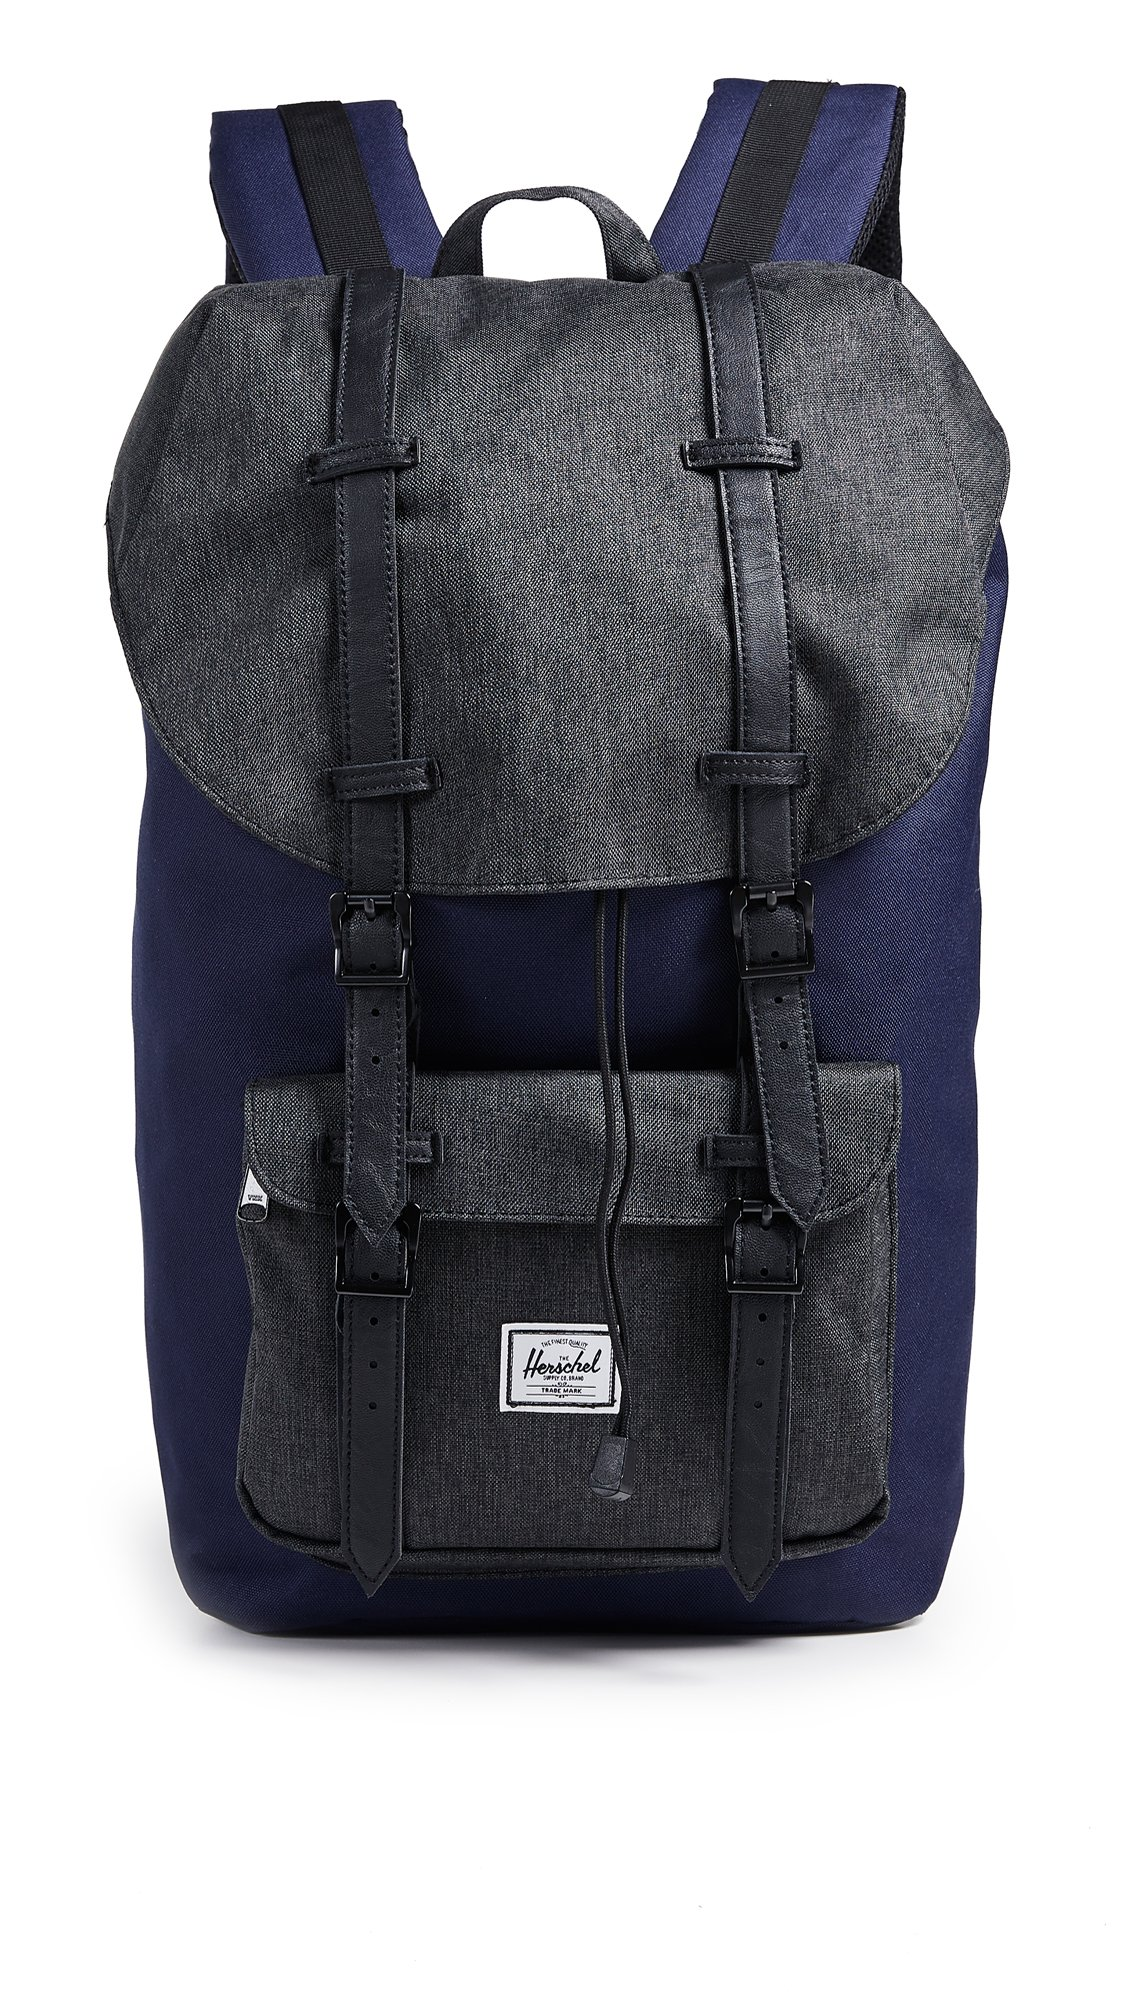 Herschel Supply Co. Little America Backpack, Peacoat/Black Crosshatch, One Size